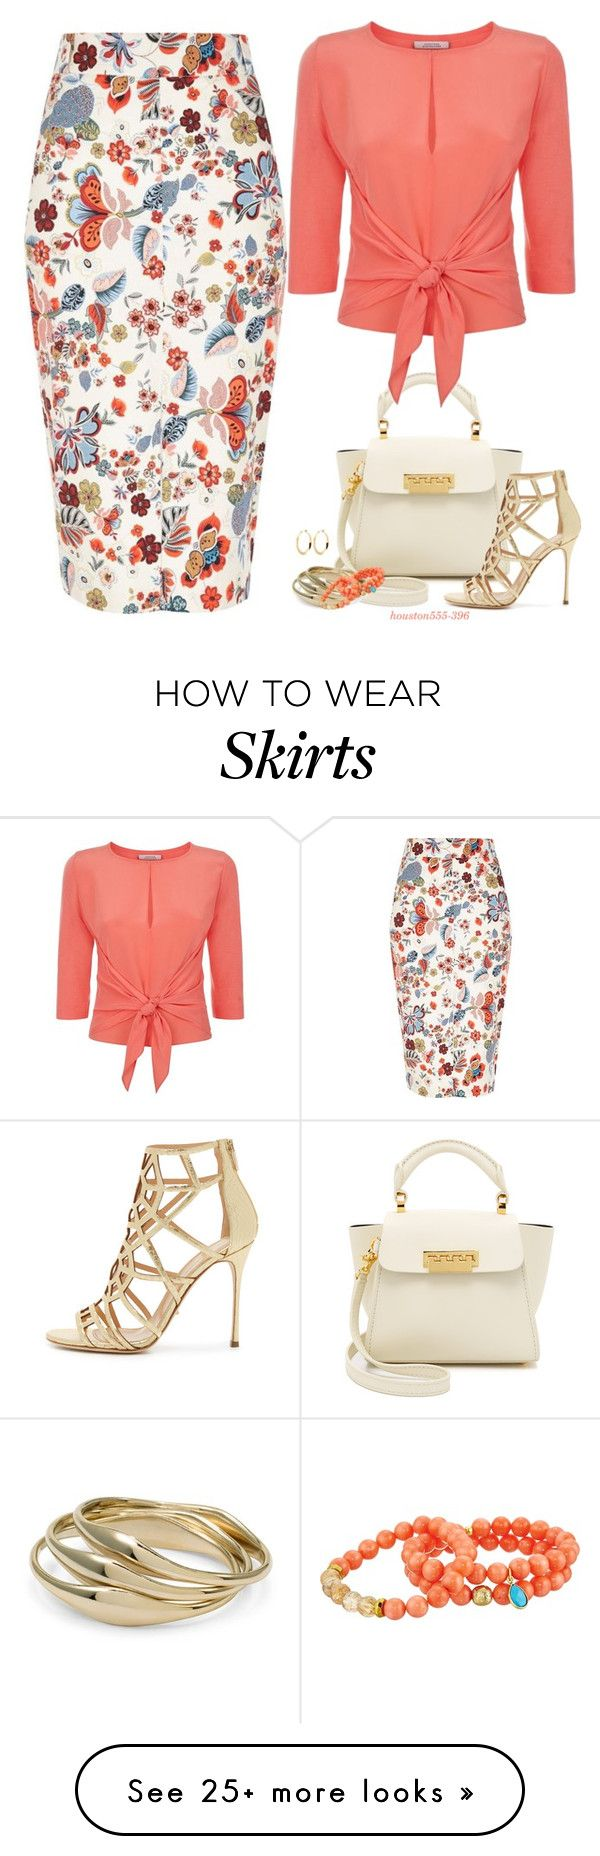 """Floral Pencil Skirt"" by houston555-396 on Polyvore featuring River Island, ZAC Zac Posen, Dorothee Schumacher, Chico's, Dee Berkley and Sergio Rossi"